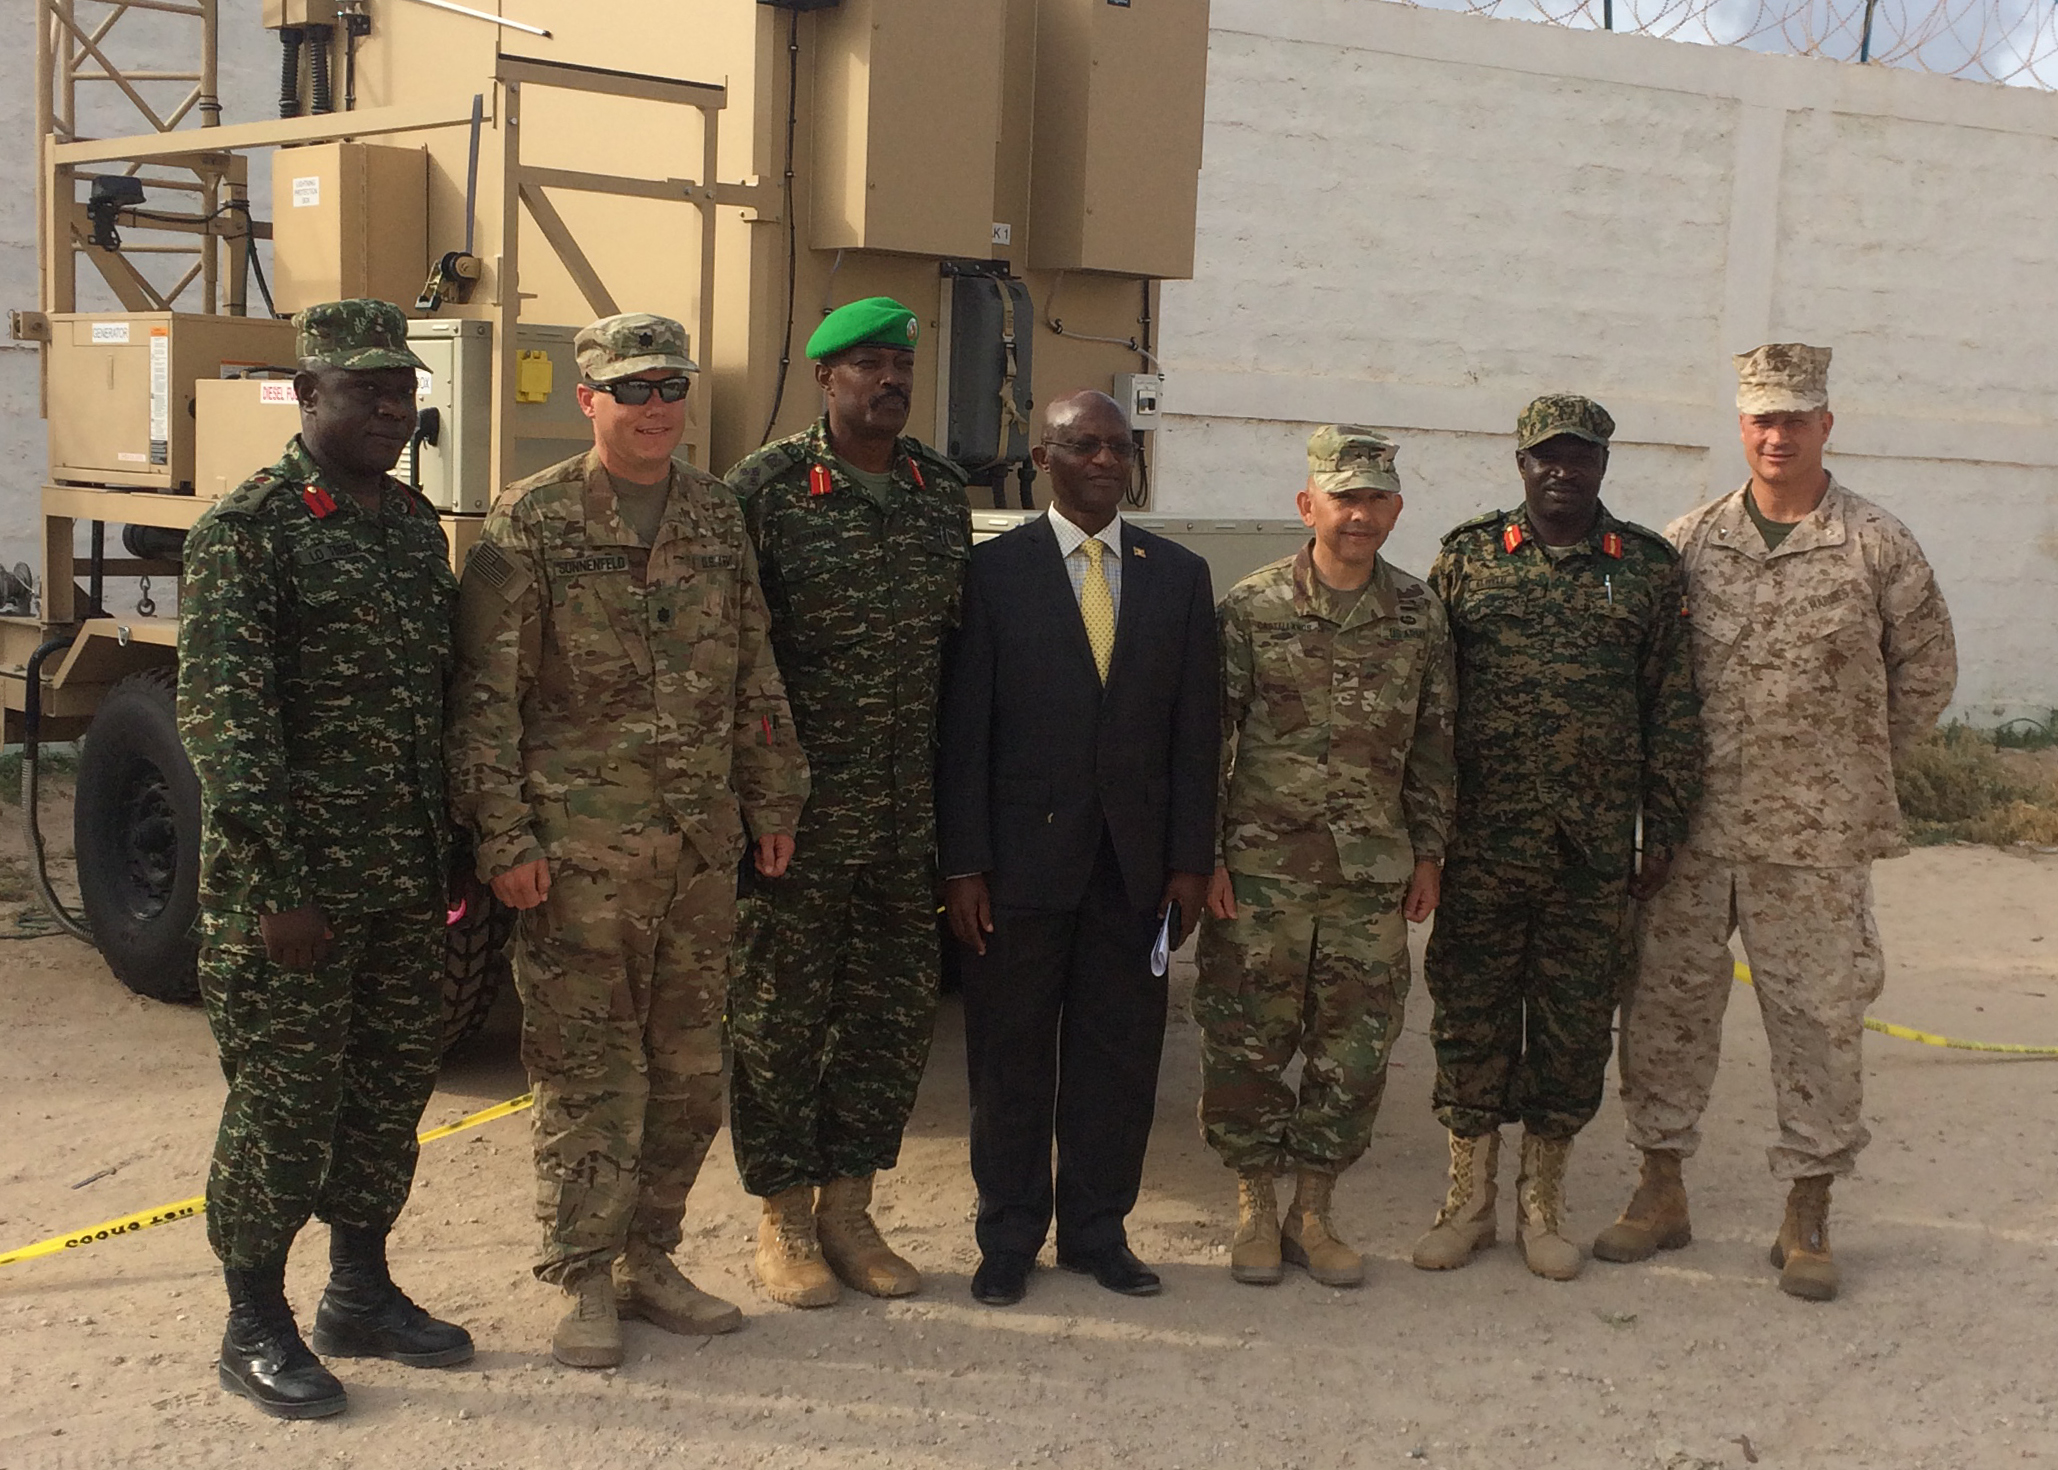 From Left: Col. Tingira Irumba, Ugandan Defense Attache to Somalia  U.S. Army Lt. Col. Rick Sonnenfeld, CJTF-HOA Mogadishu, Somalia  Brig. Gen. Kayanja Muhanga Sector 1 Commander UPDF  Mugisha Nathan, Ugandan Deputy Ambassador to Somalia   U.S. Army Brig. Gen. Miguel Castellanos, DCG CJTF-HOA Mogadishu, Somalia  Maj. Gen. Peter Elwelu, Ugandan Peoples Defense Force, Chief of Land Forces  U.S. Marine Brig. Gen. David Furness, Commanding General CJTF-HOA